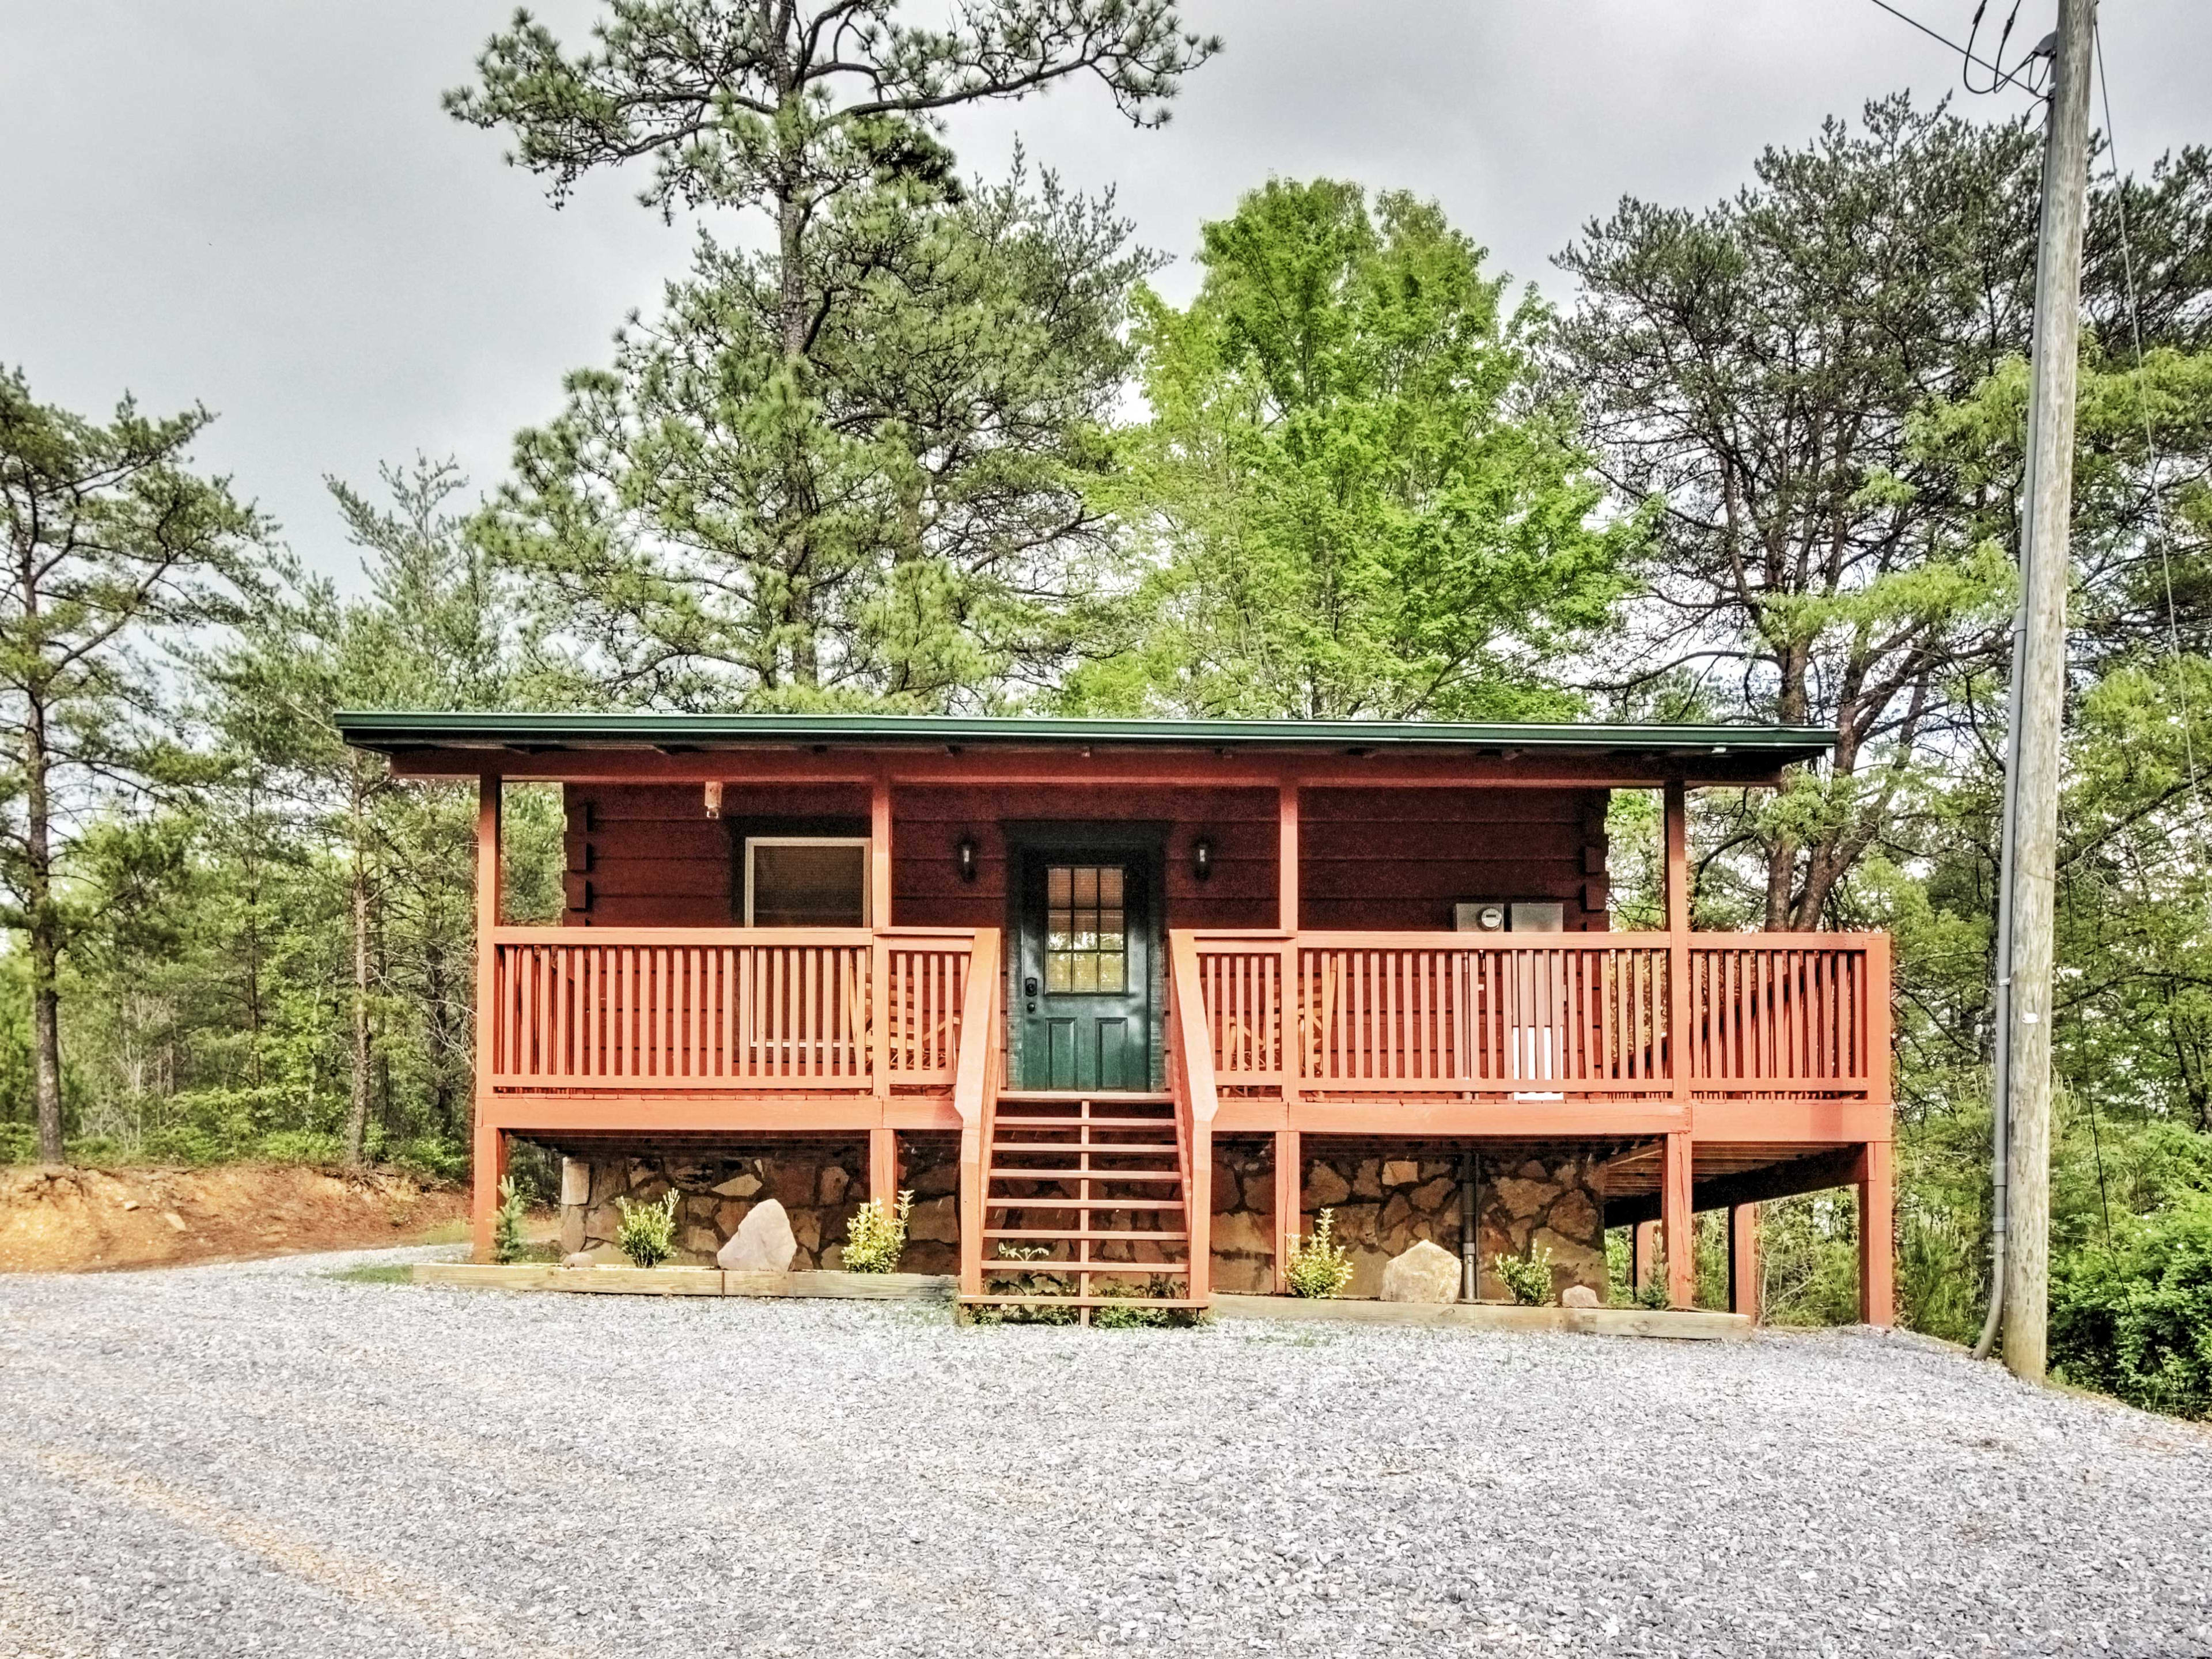 Make your next Pigeon Forge vacation a memorable one by booking this log cabin!